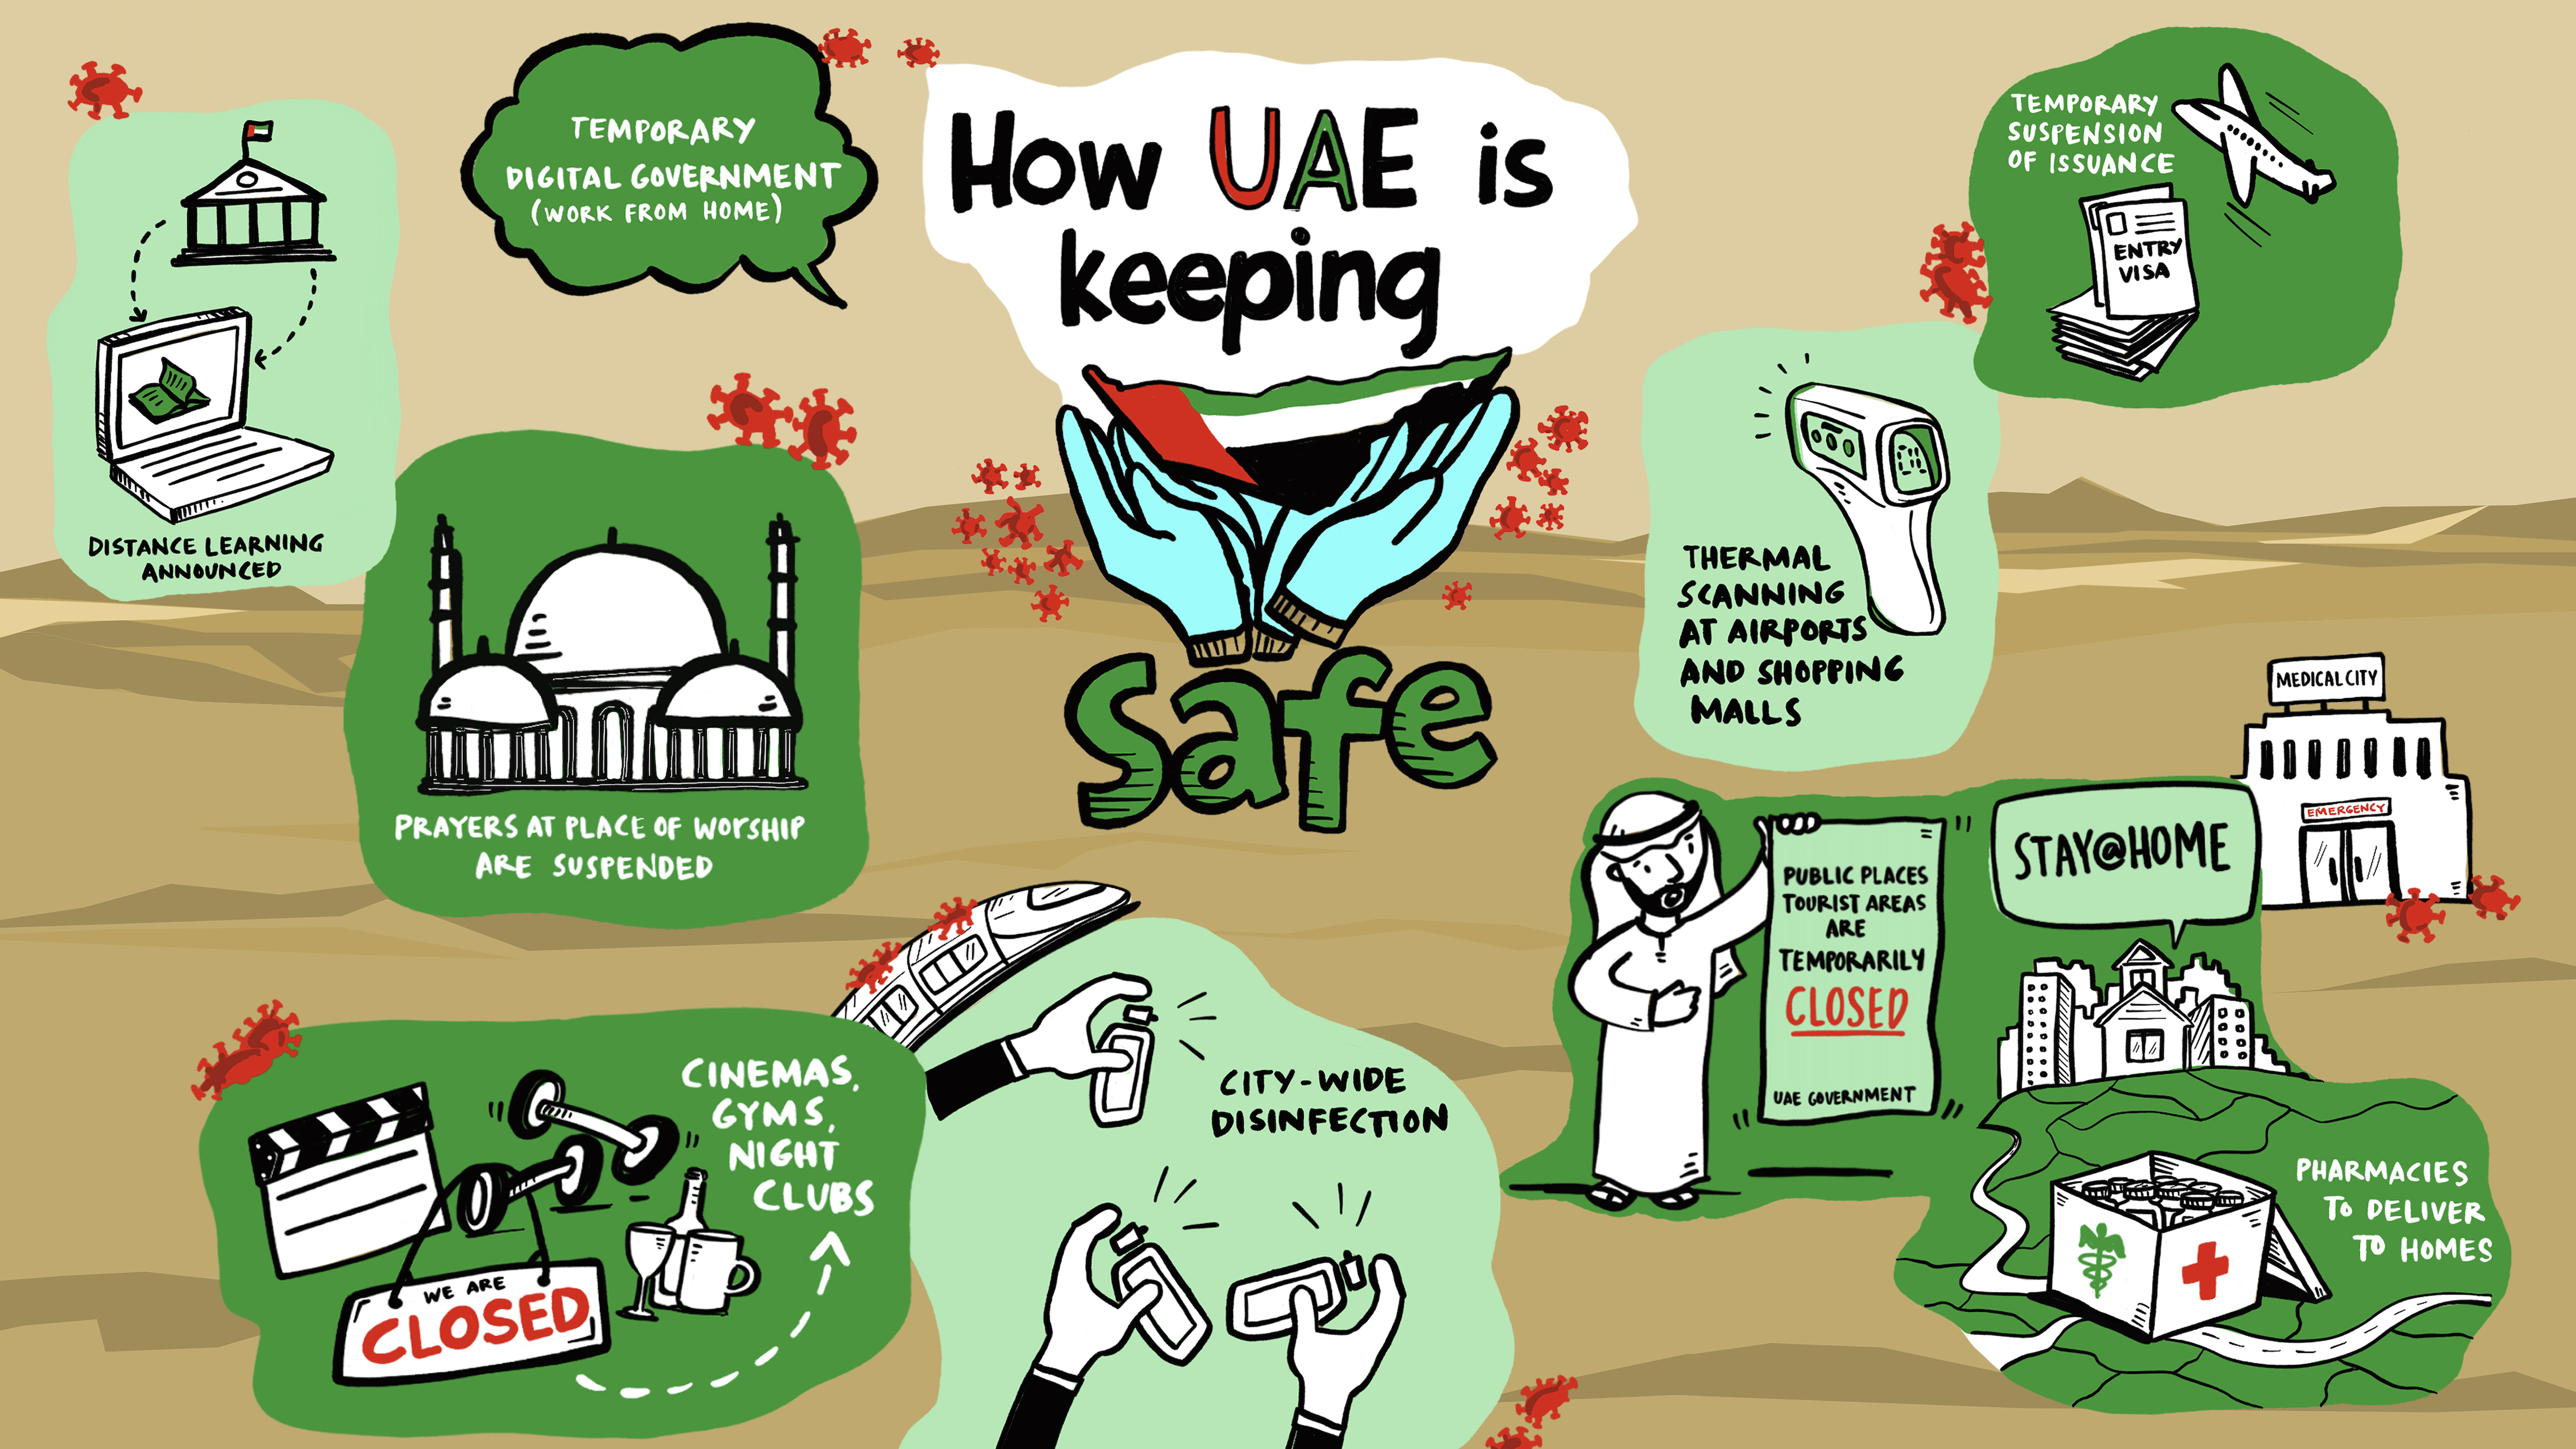 How the UAE is keeping the country safe